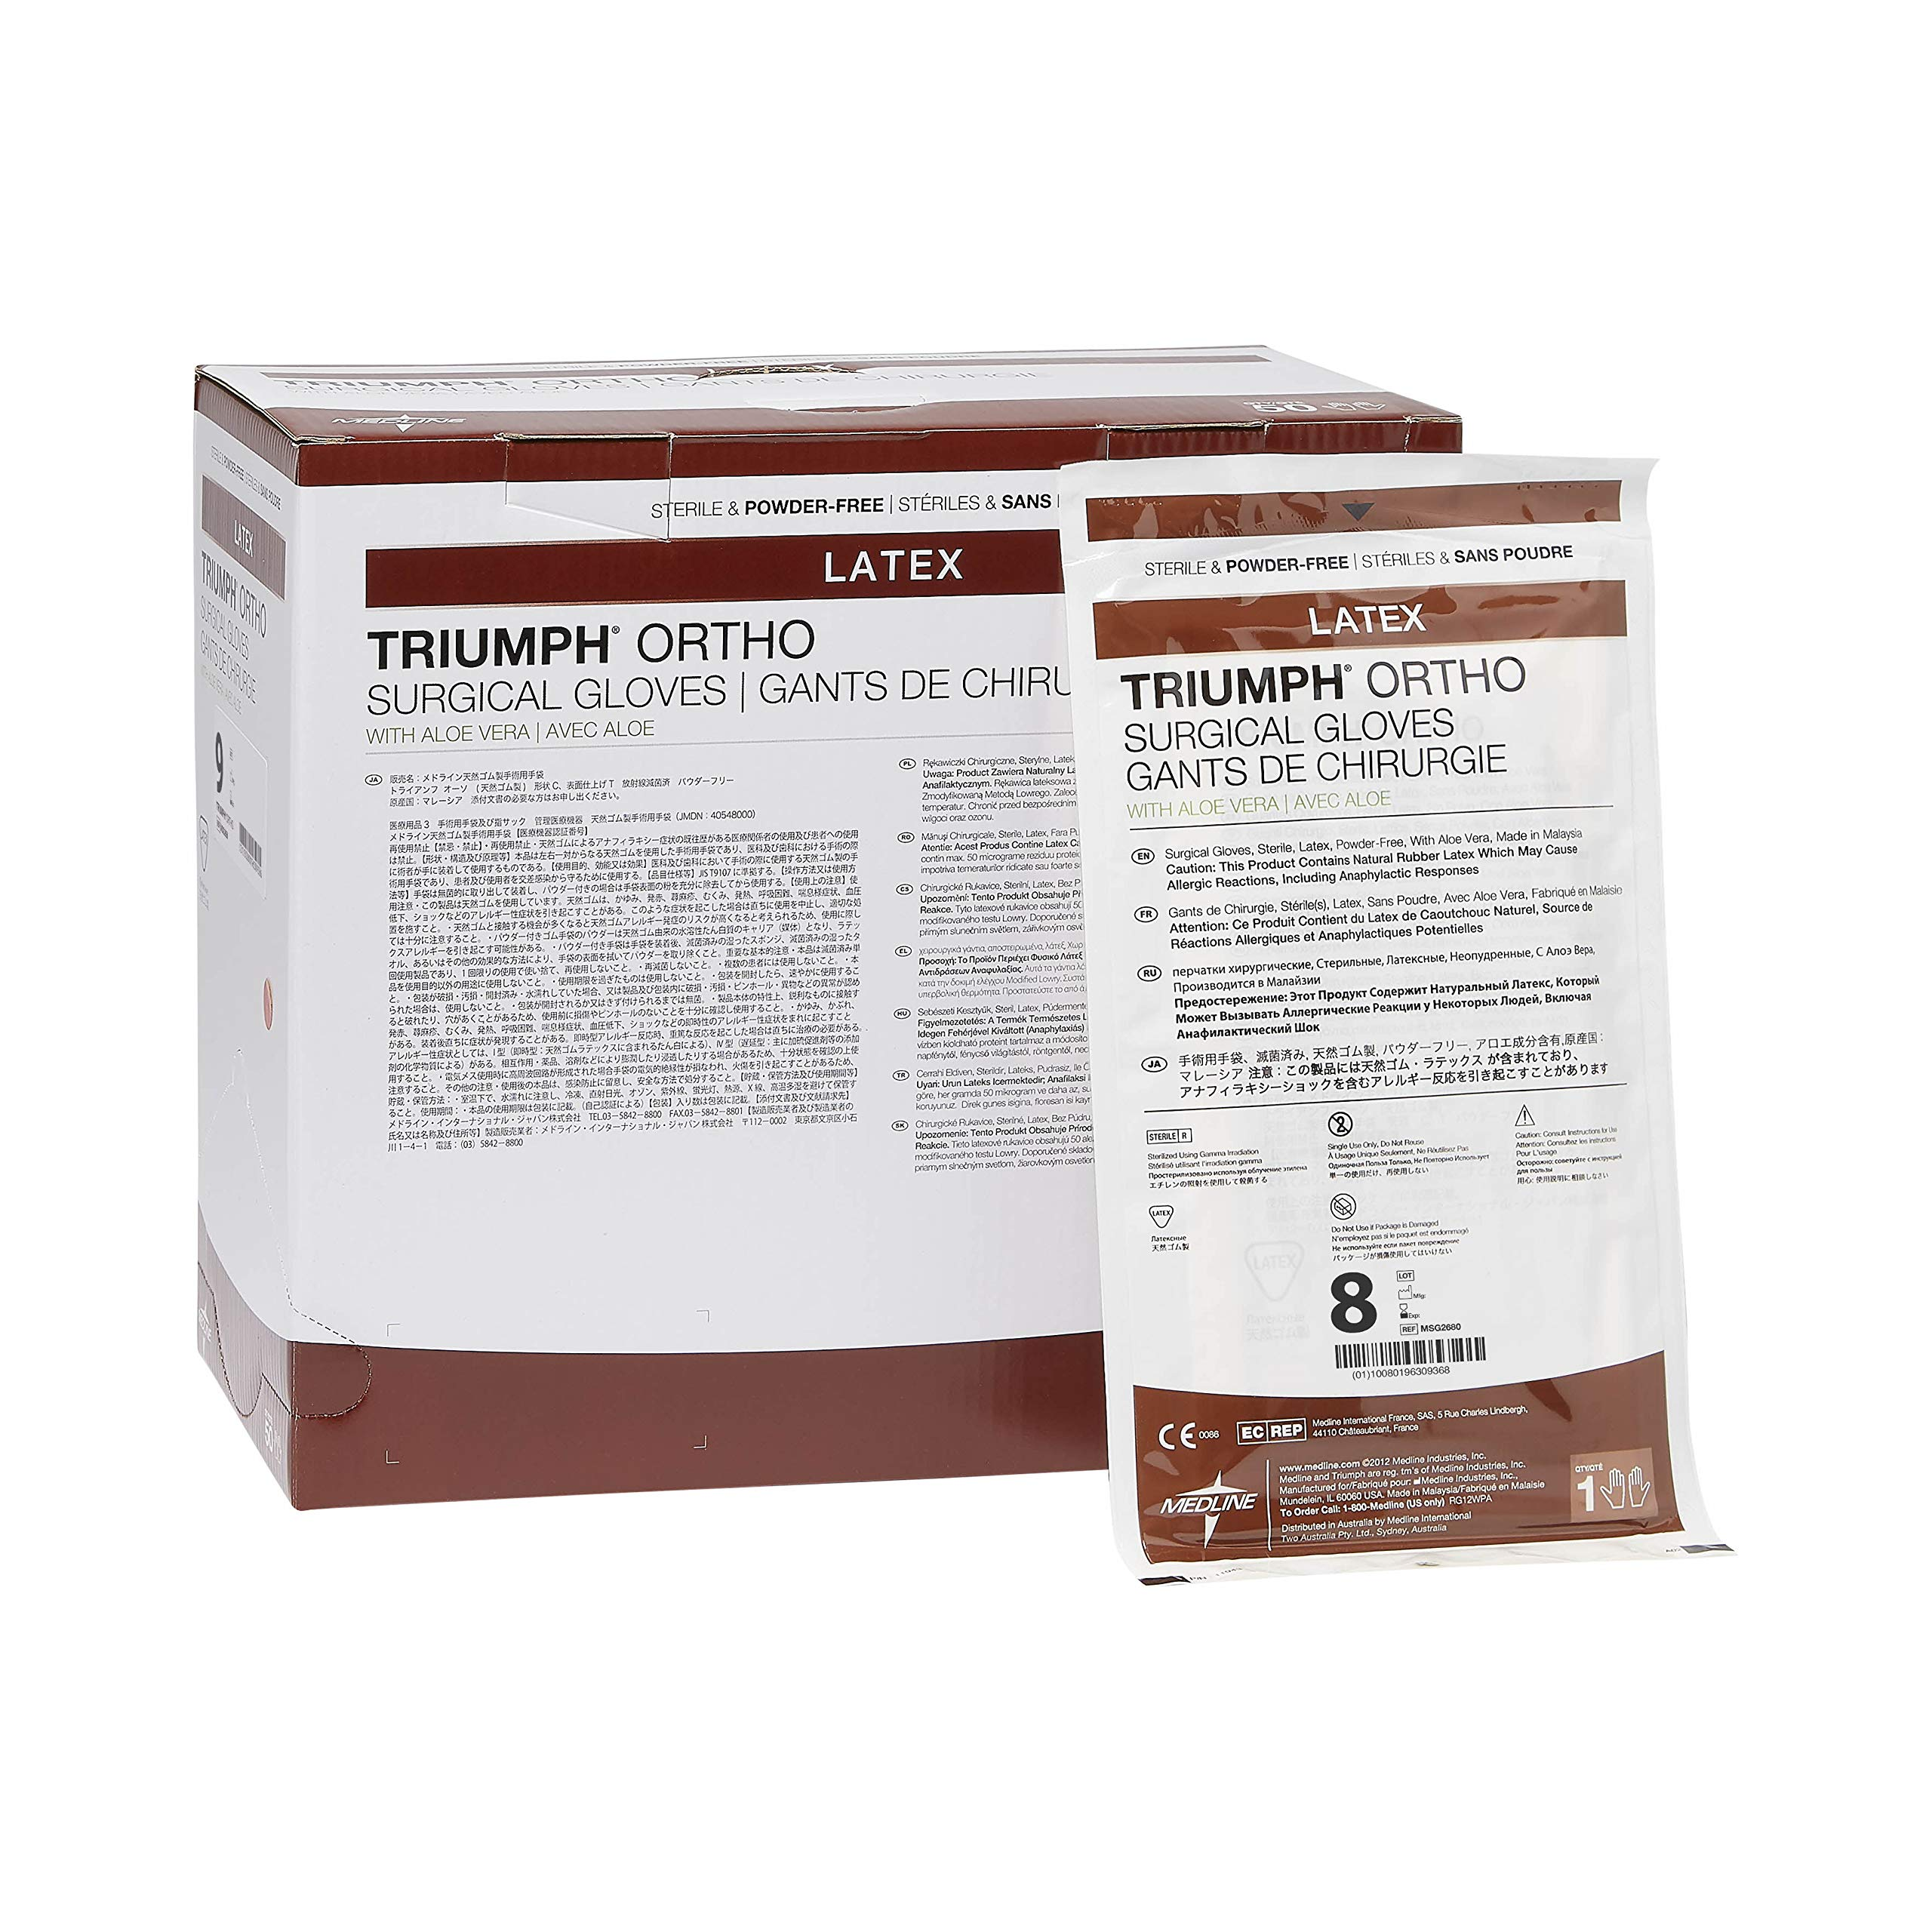 Medline MSG2680 Triumph Ortho with Aloe Sterile and Powder-Free Latex Surgical Glove, Size 8, Brown (Pack of 200)